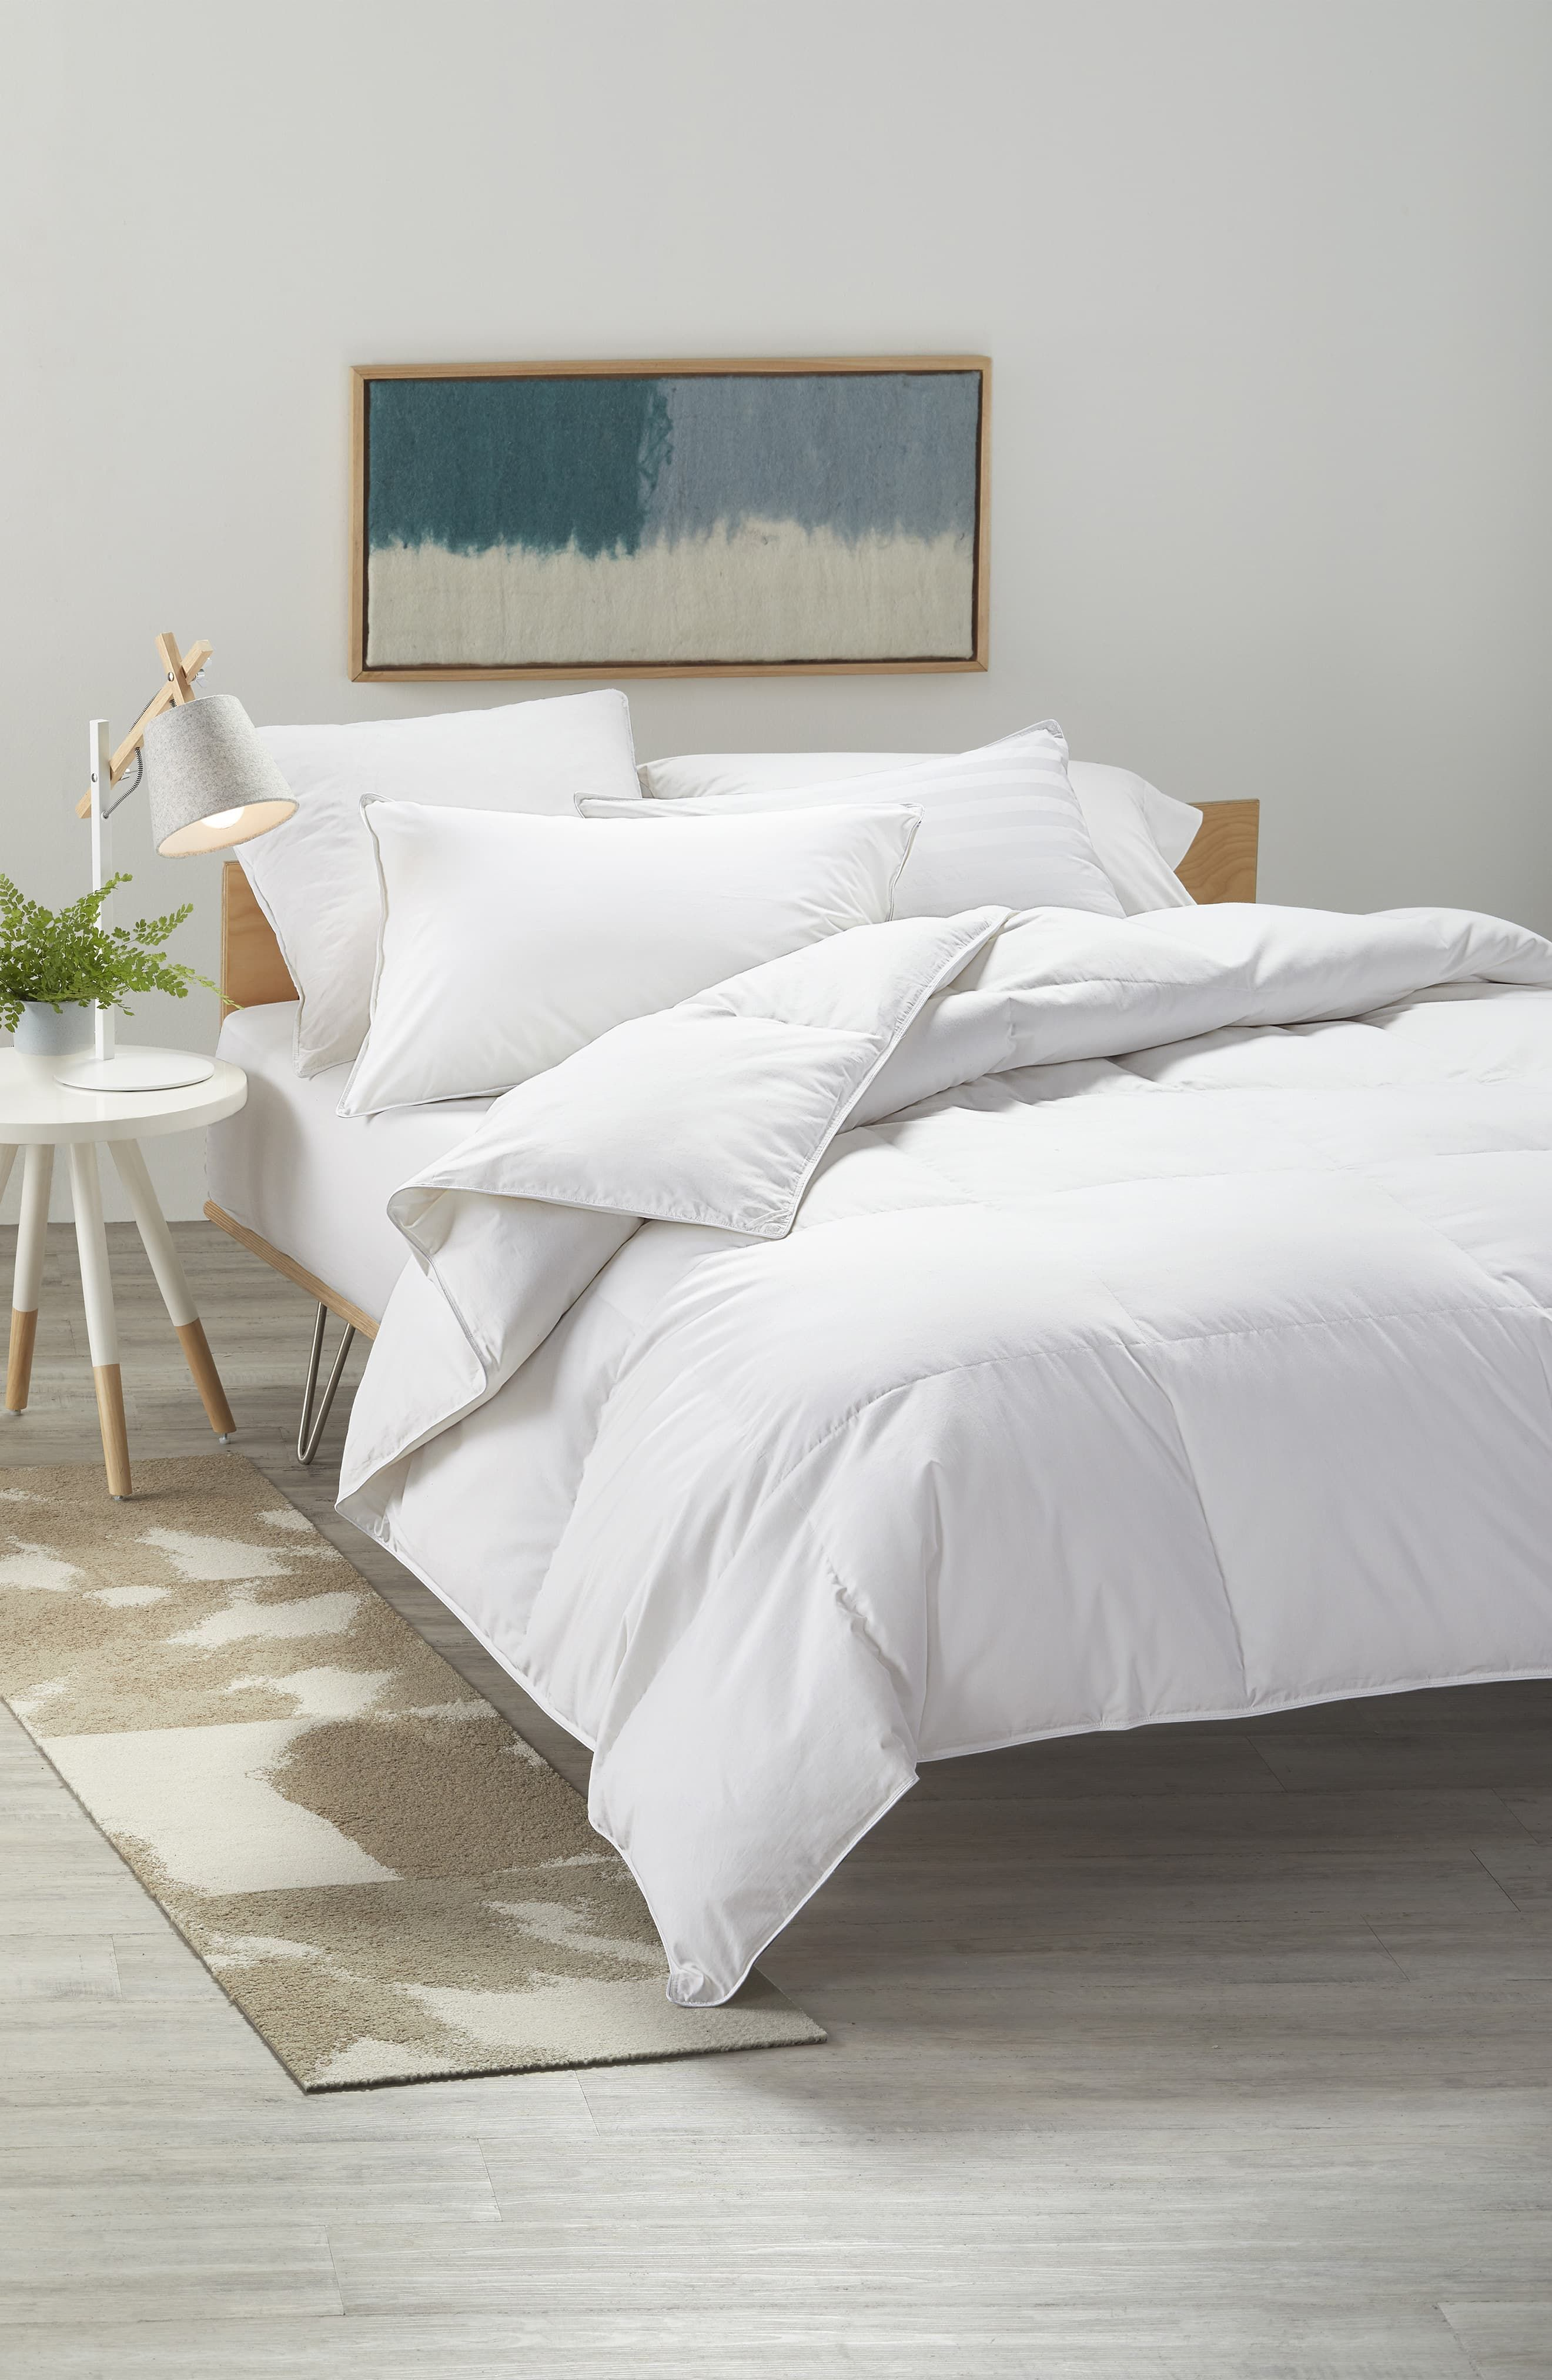 Nordstrom At Home 400 Thread Count All Season Goose Down Comforter Size King White Down Comforter Comforters Home